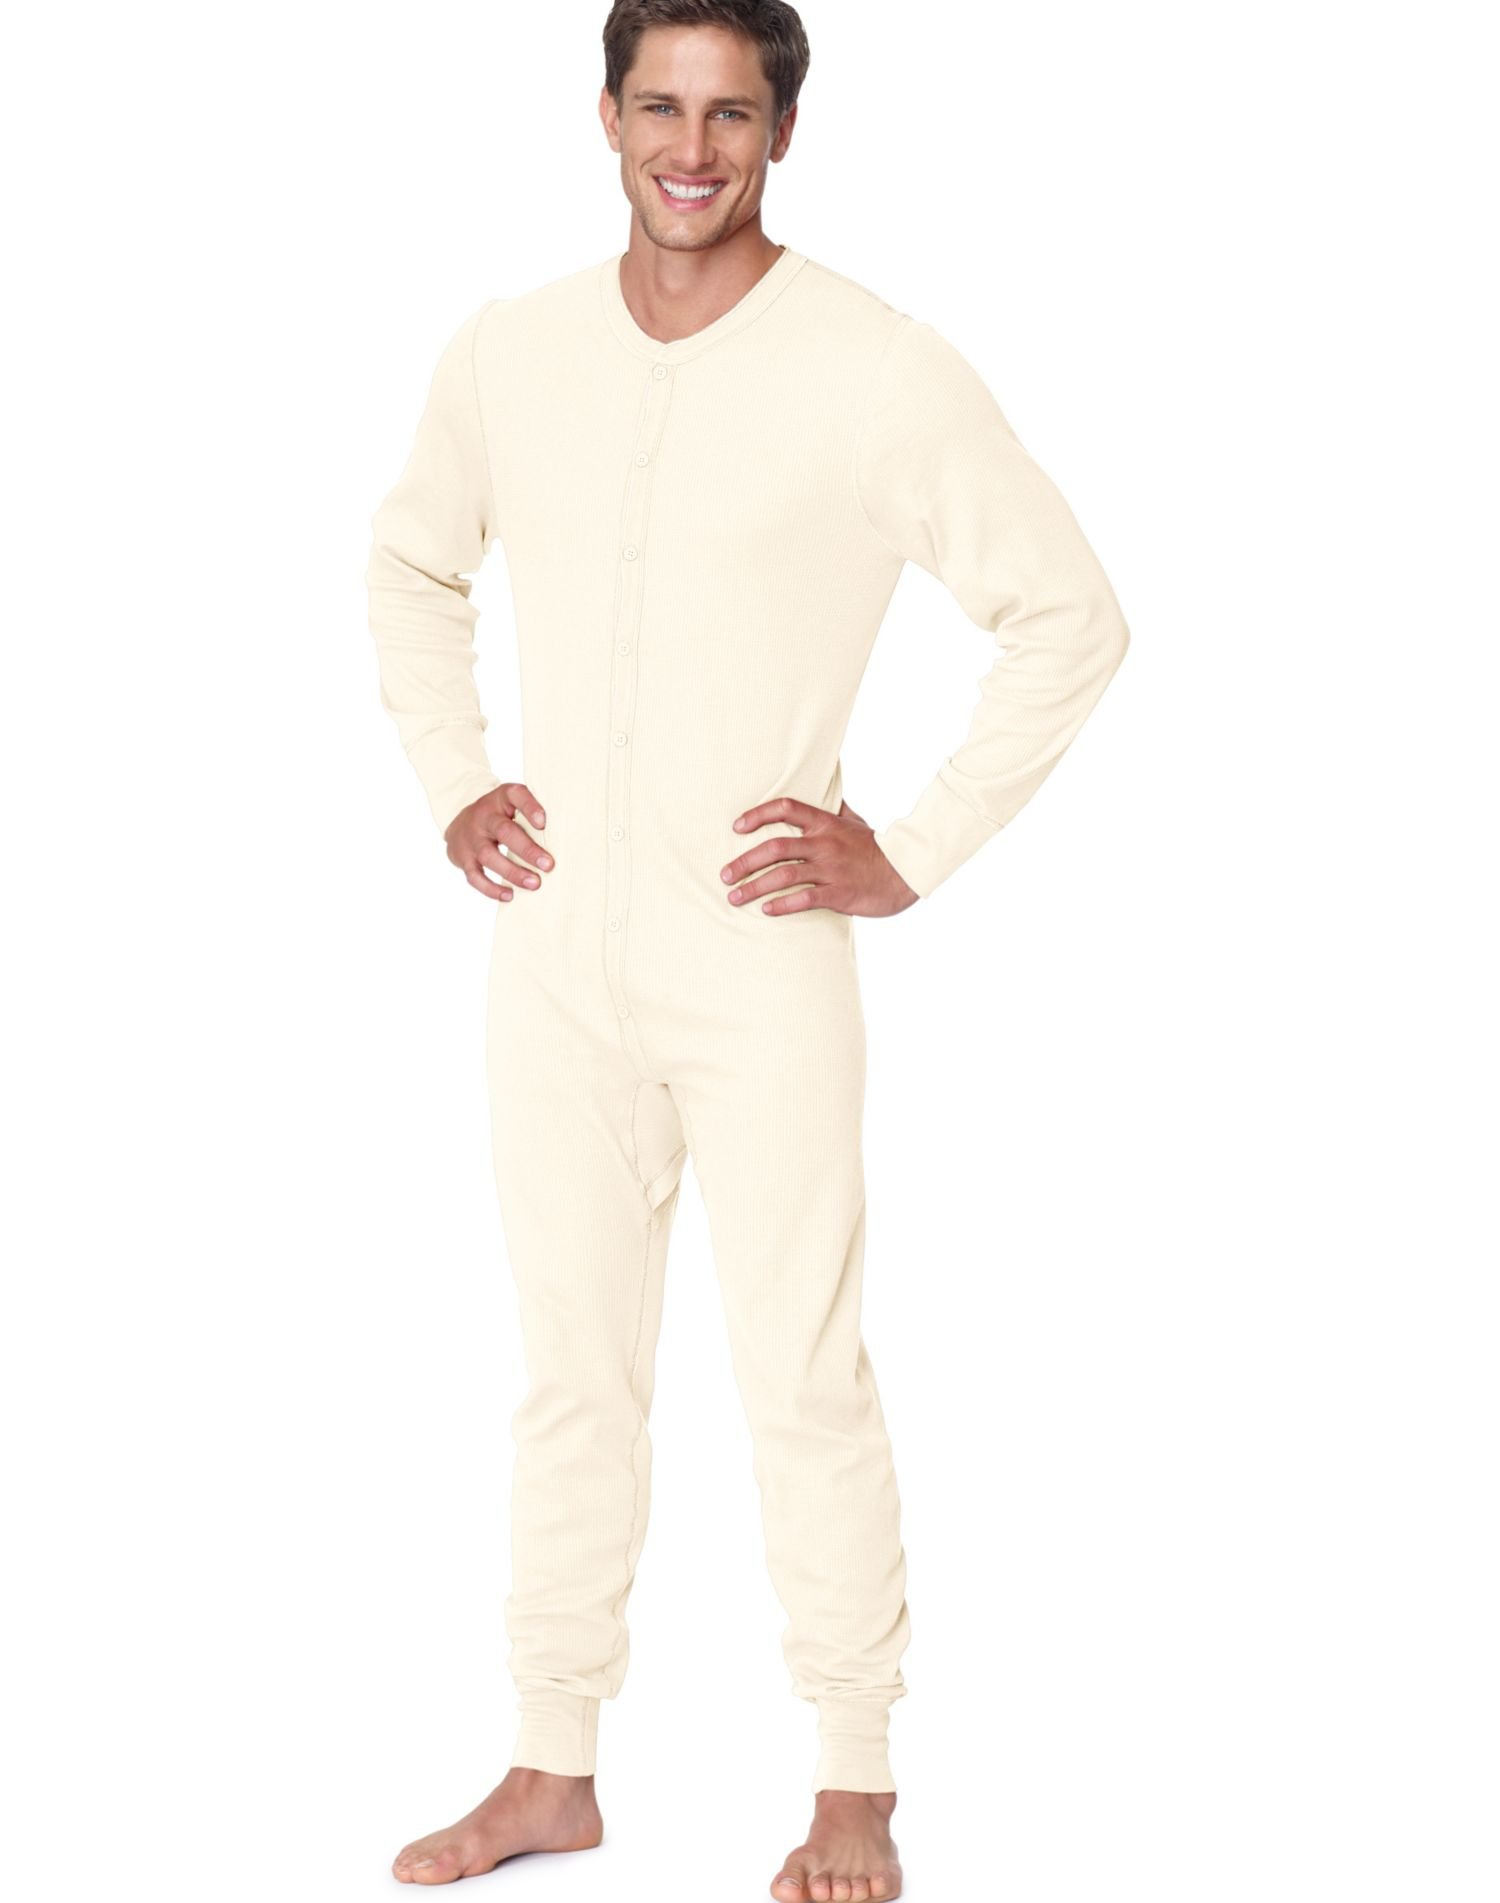 Hanes Men's X-Temp Thermal Union Suit - Extended Sizes, Natural, 4X-Large by Hanes